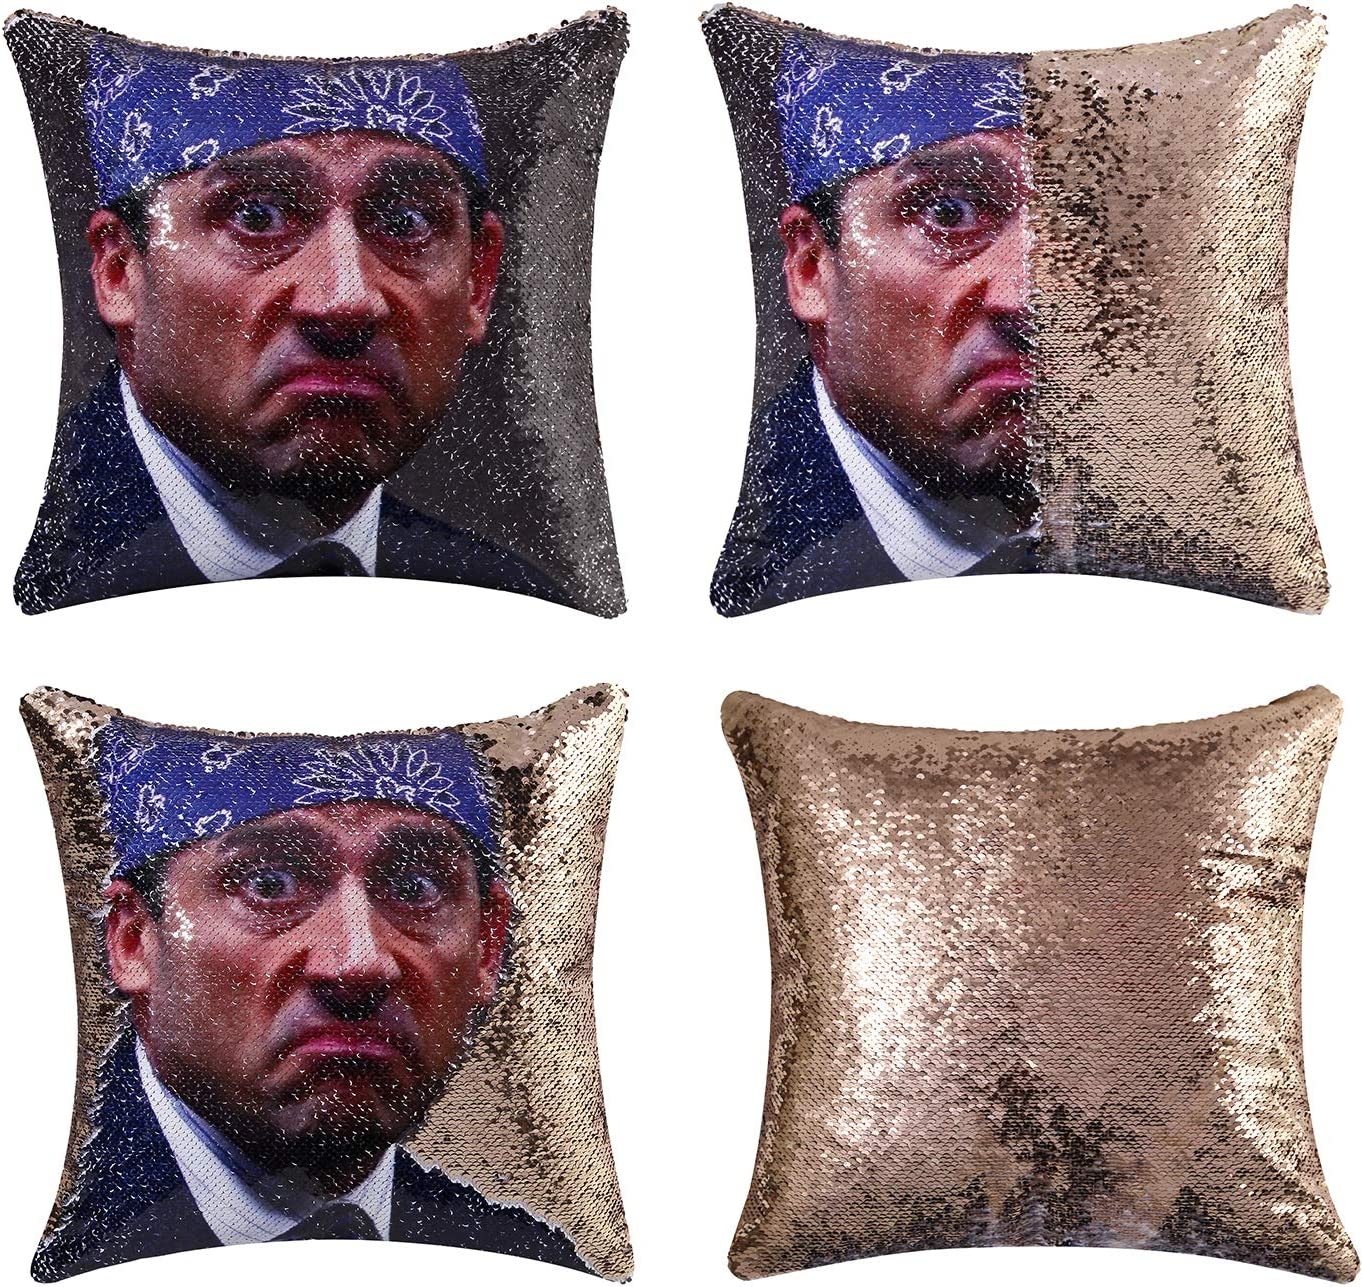 cygnus The Office Michael Scott Quote Humor Gifts Sequin Mermaid Pillow Cover That Color Change Cushion Cover 16x16 inches (Type 2-Champagne equin)